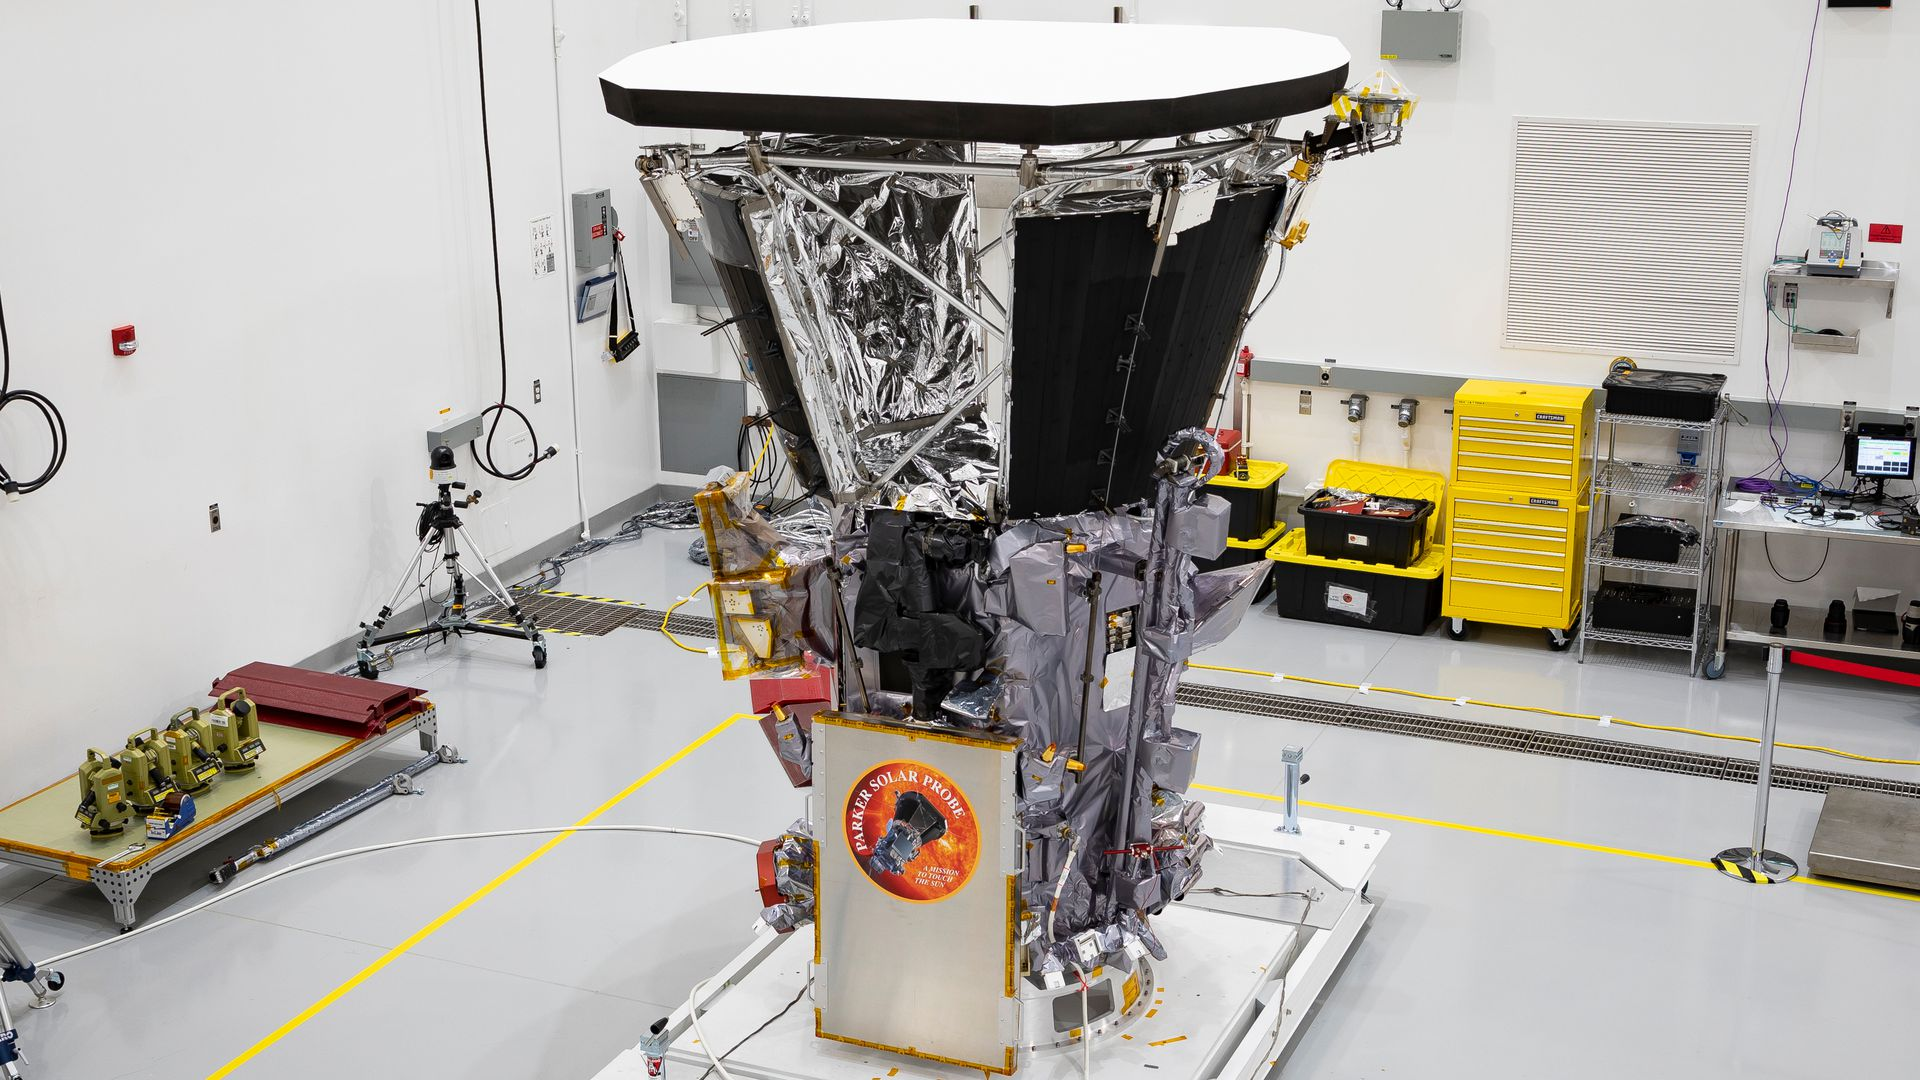 The Parker solar probe to launch first mission to touch the